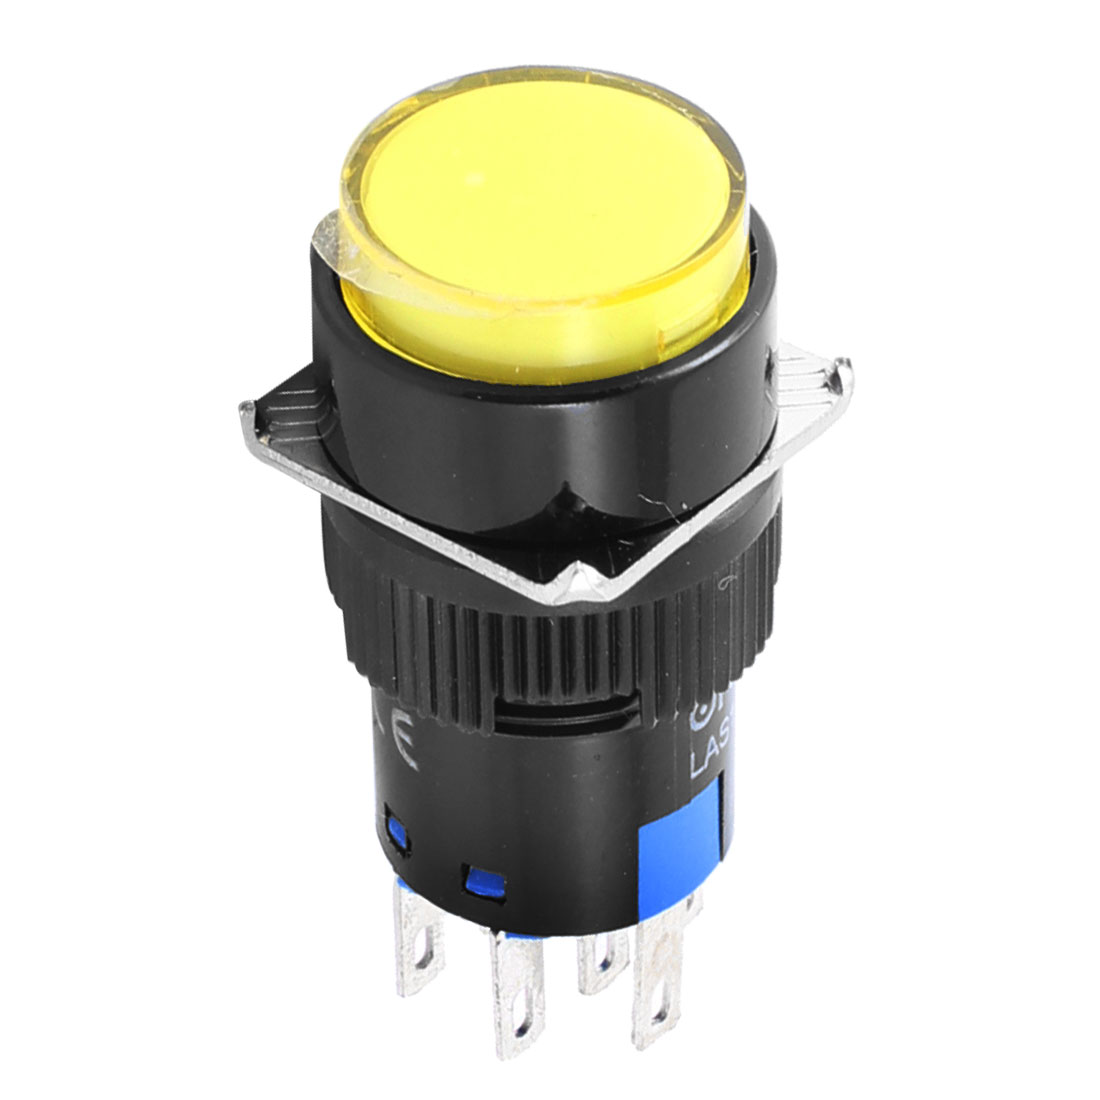 Yellow Neon Light AC 220V 5A Round Momentary Push Button Switch